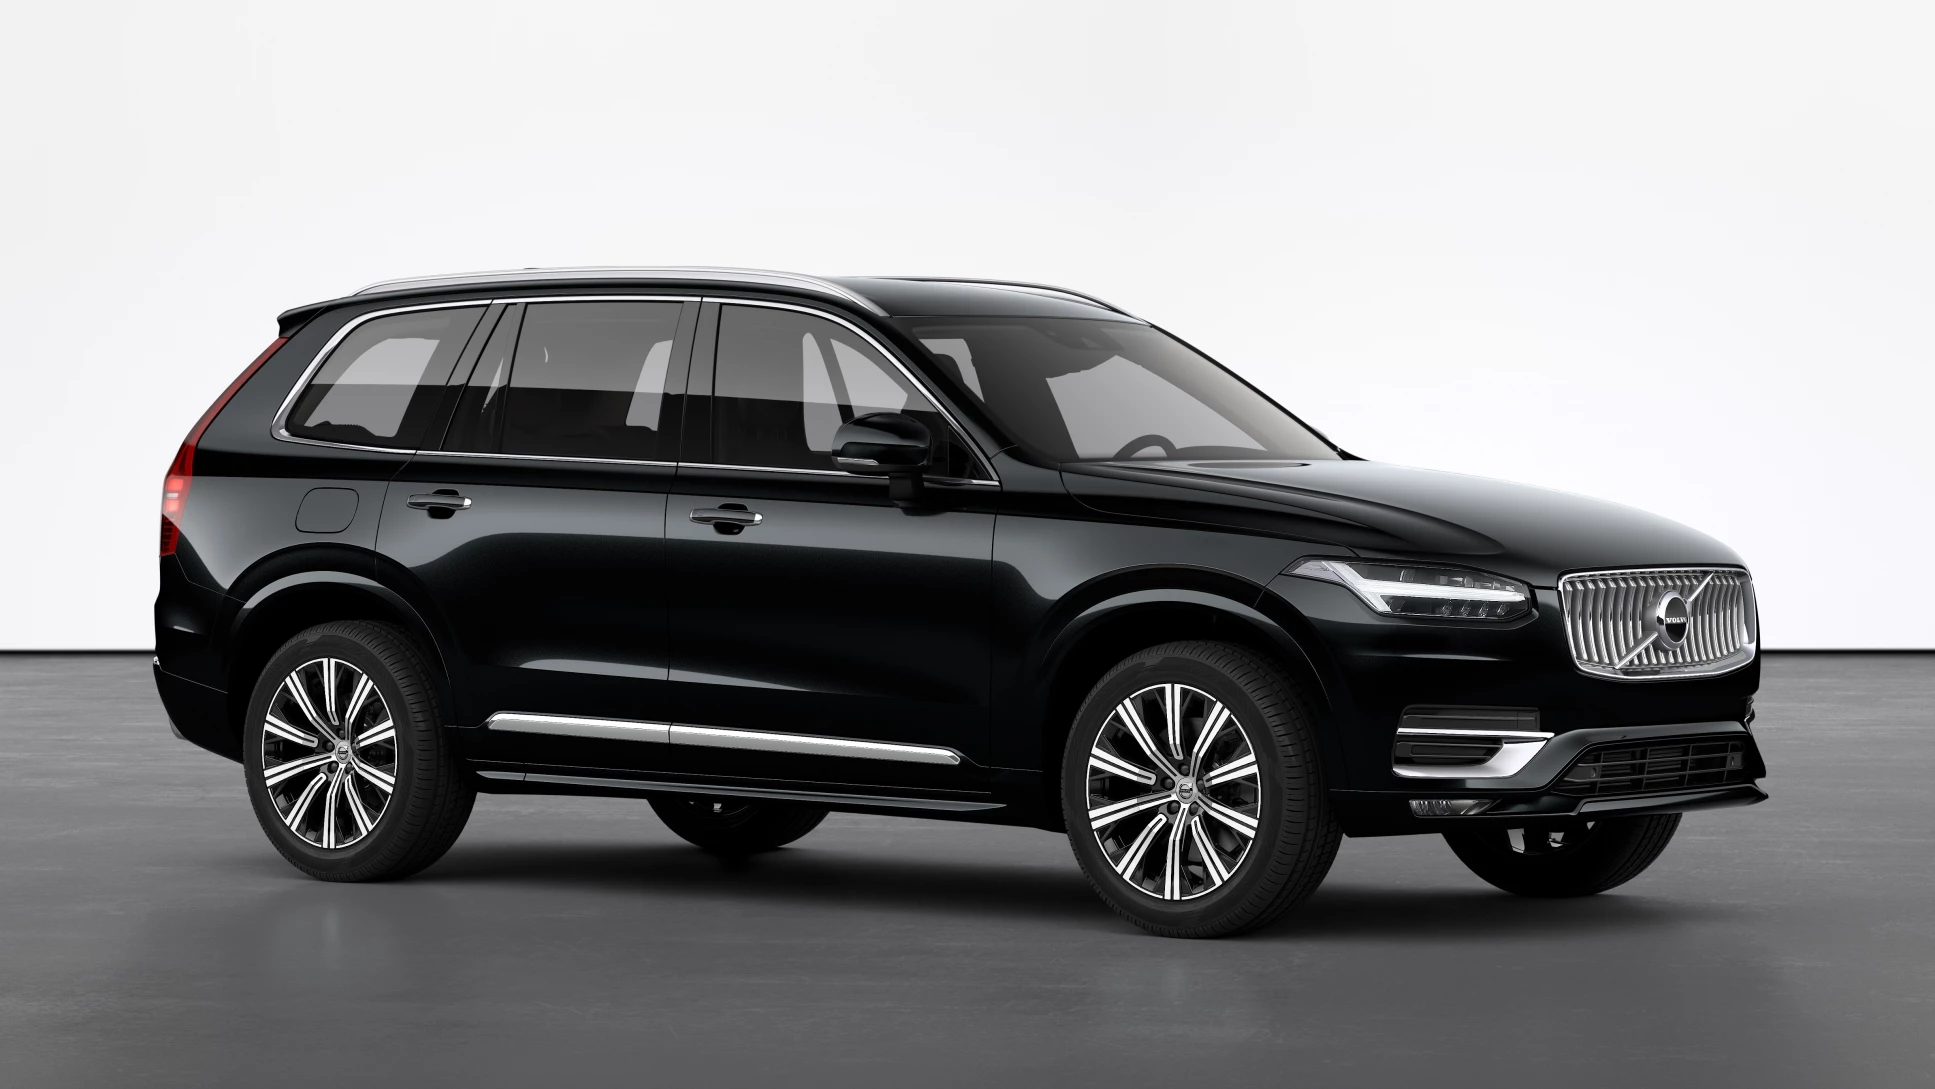 Volvo XC90 Recharge T8 Twin Engine Plug-in hybrid Inscription AT8 eAWD – 12332